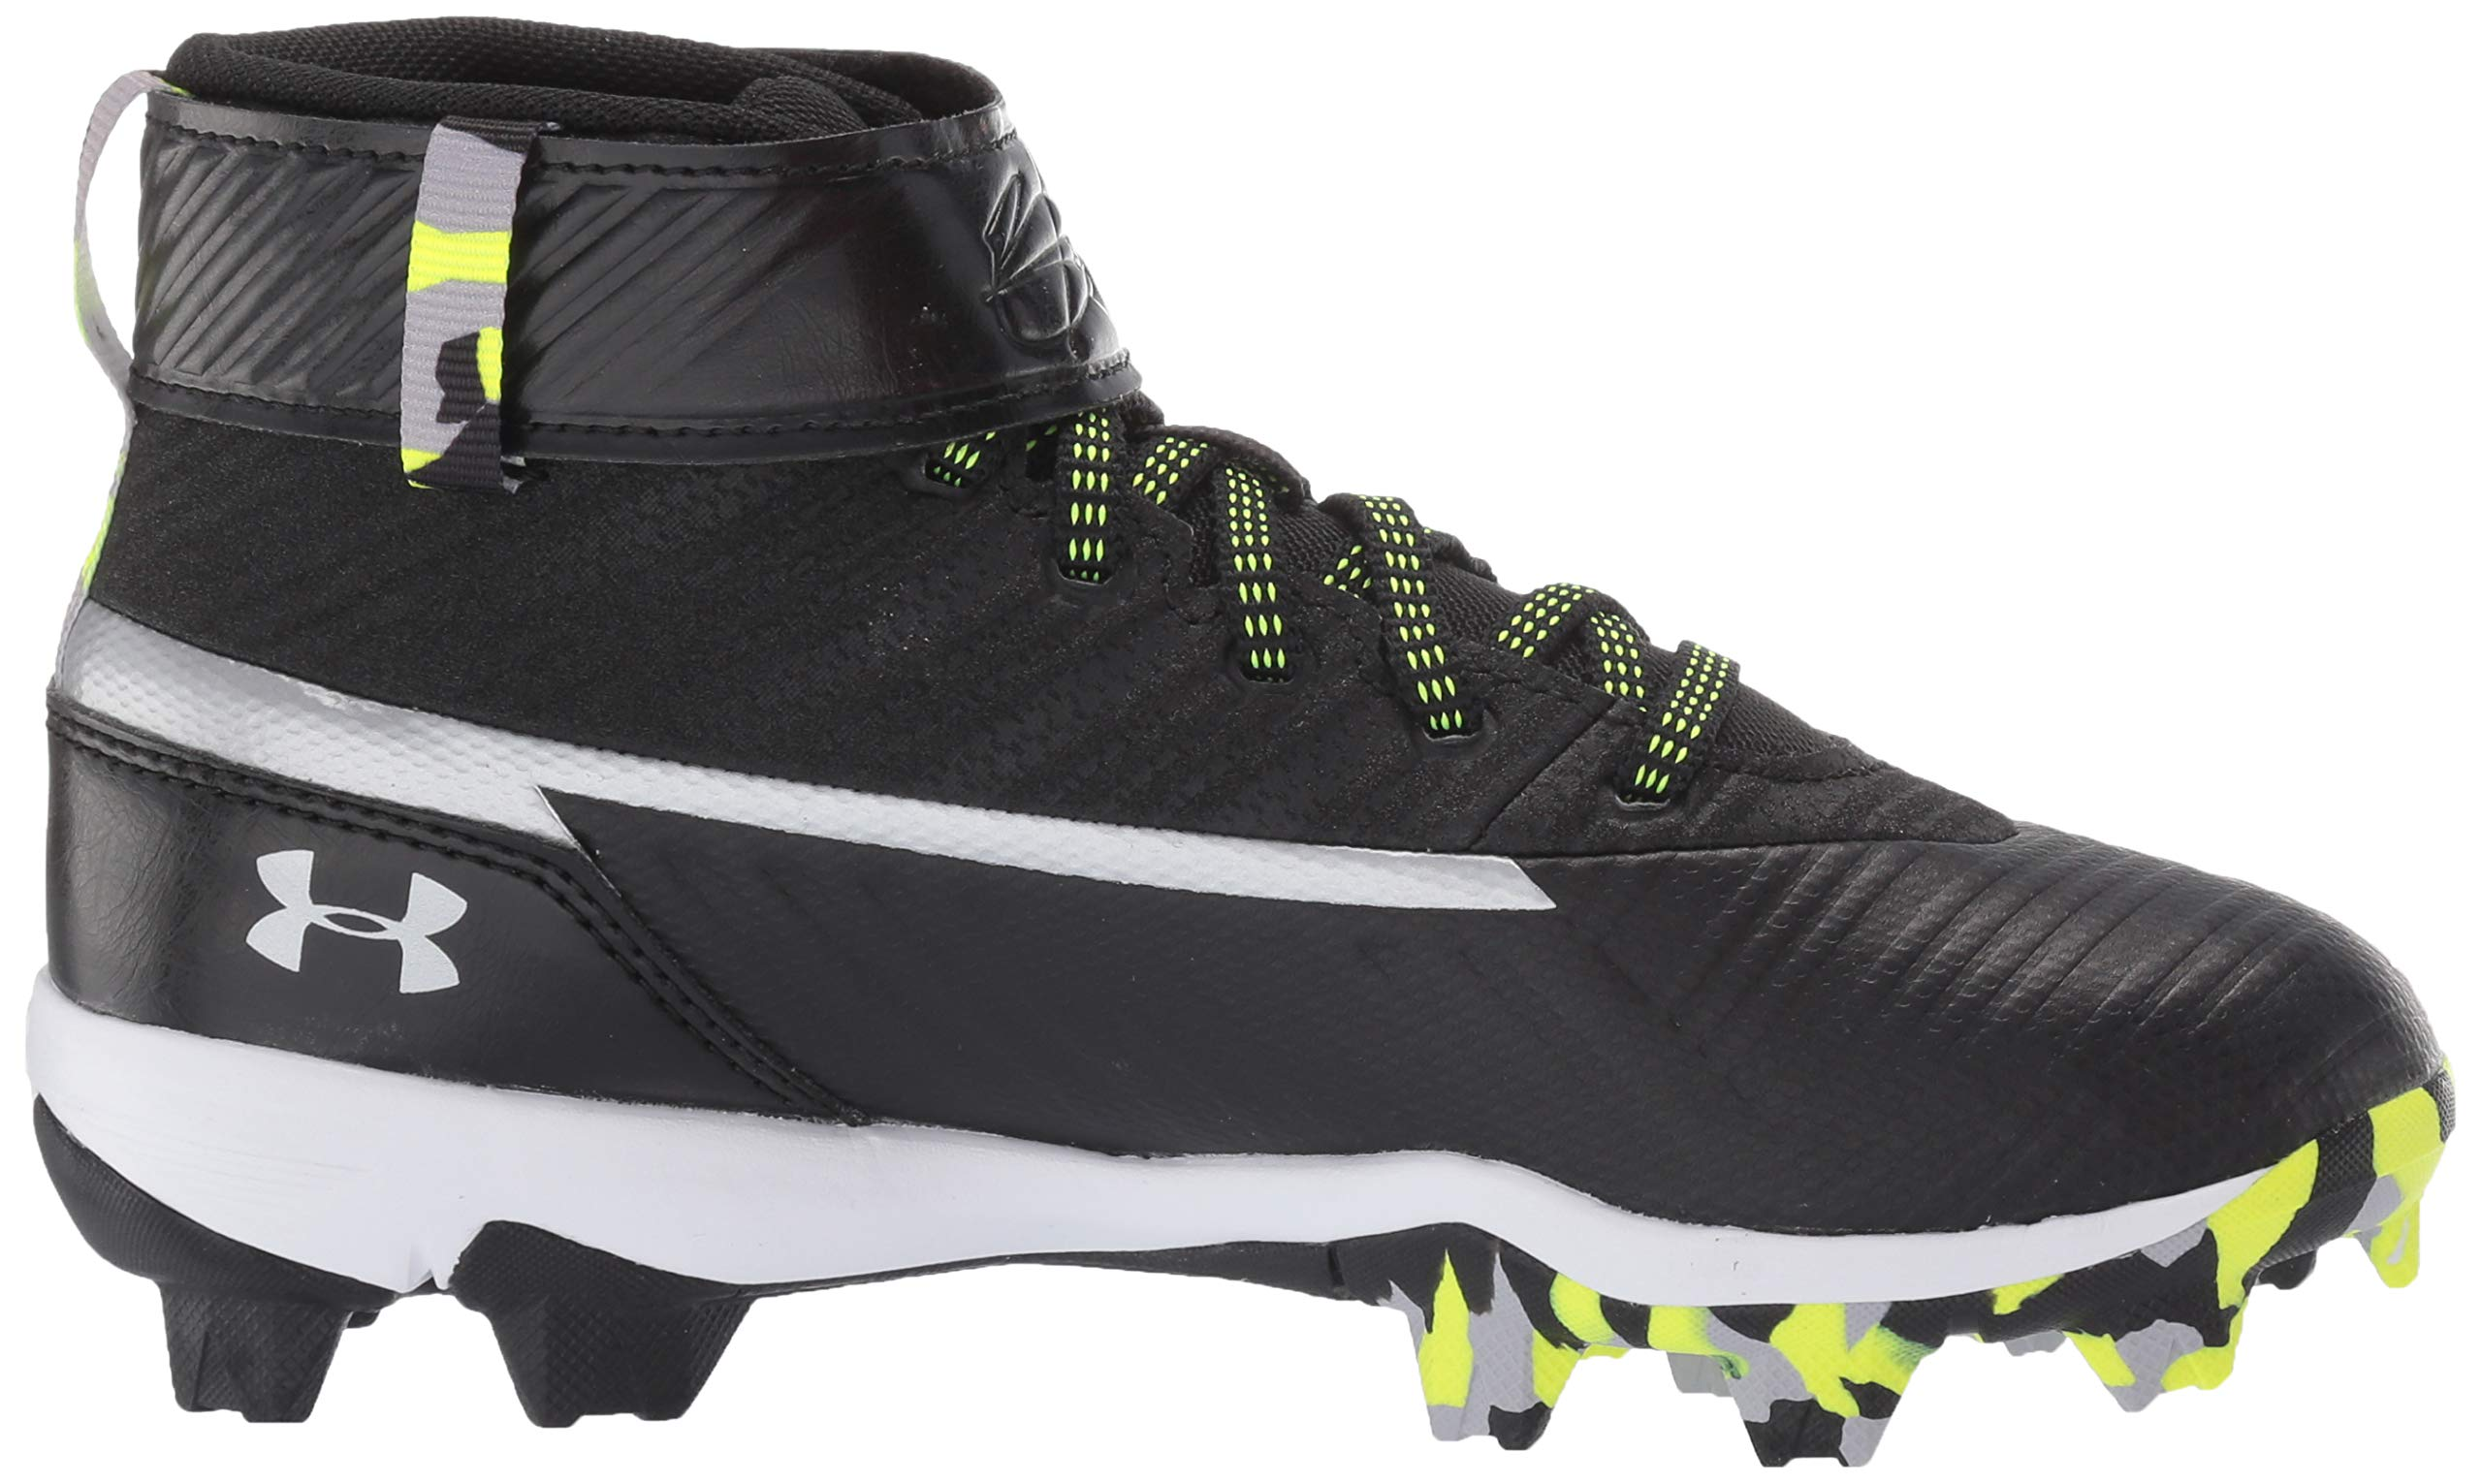 Under Armour Boys' Harper 3 Mid Jr. RM Baseball Shoe Black (001)/White 1.5 by Under Armour (Image #11)